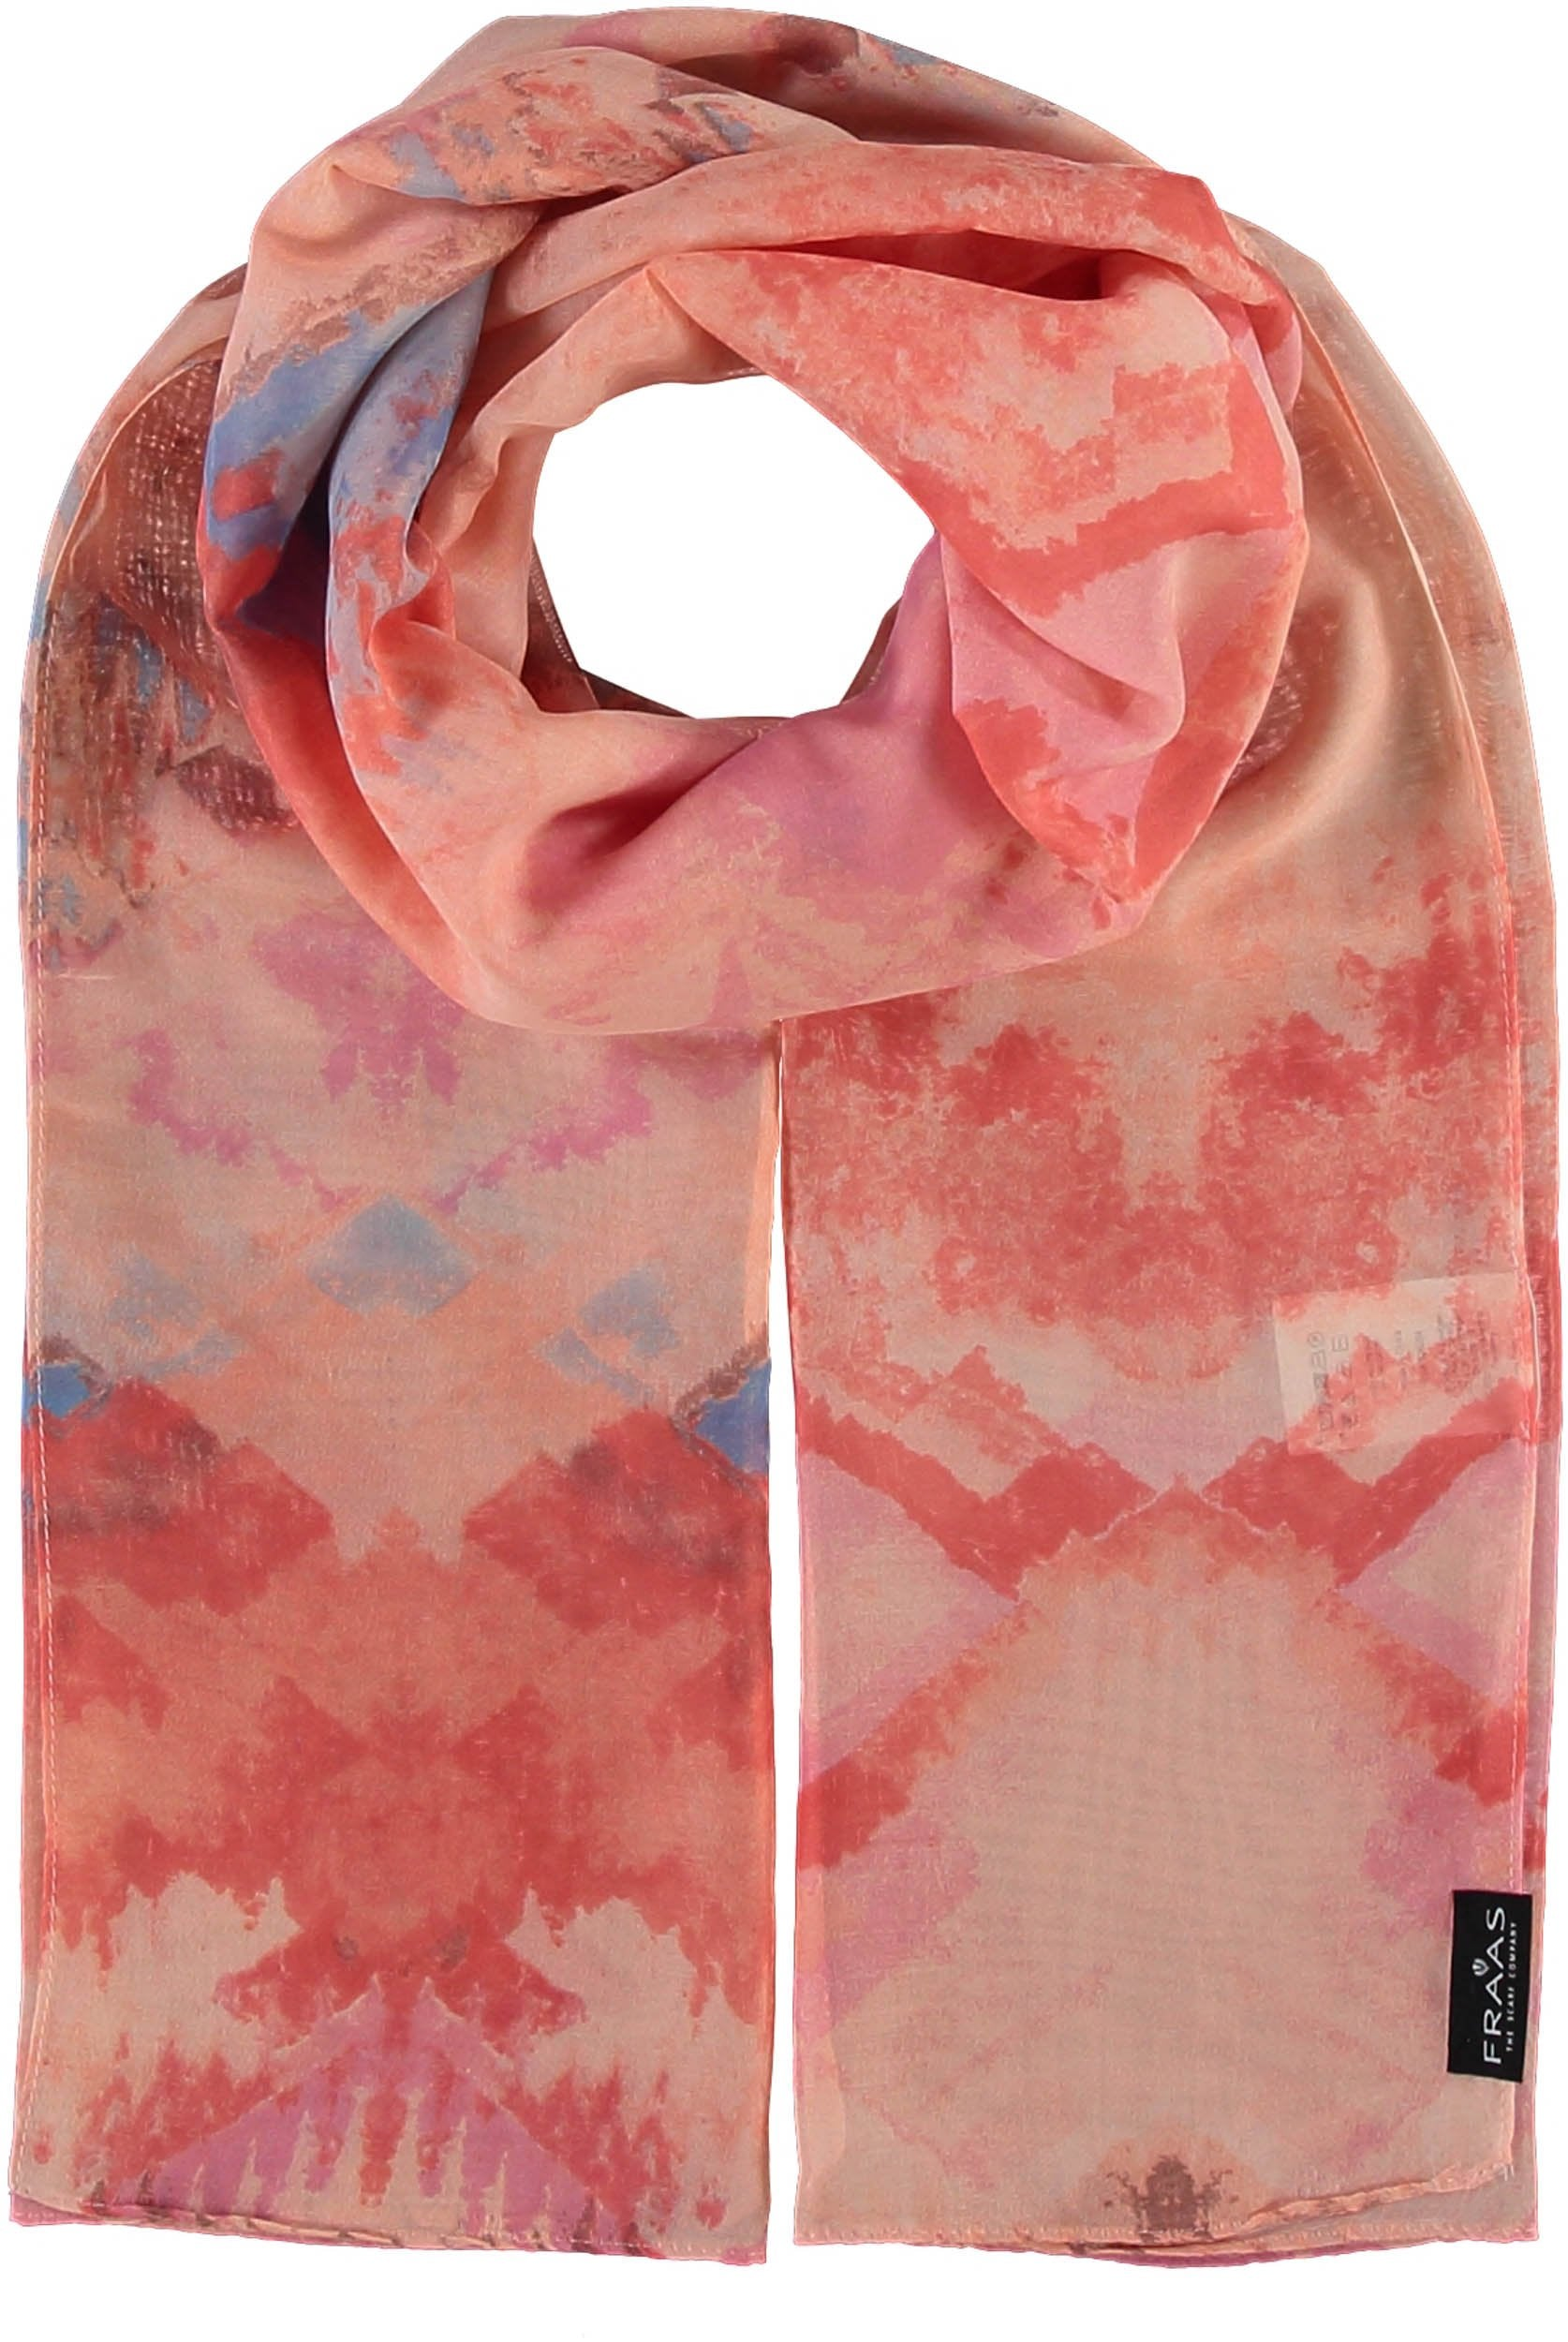 Watermark Polyester Printed Scarf